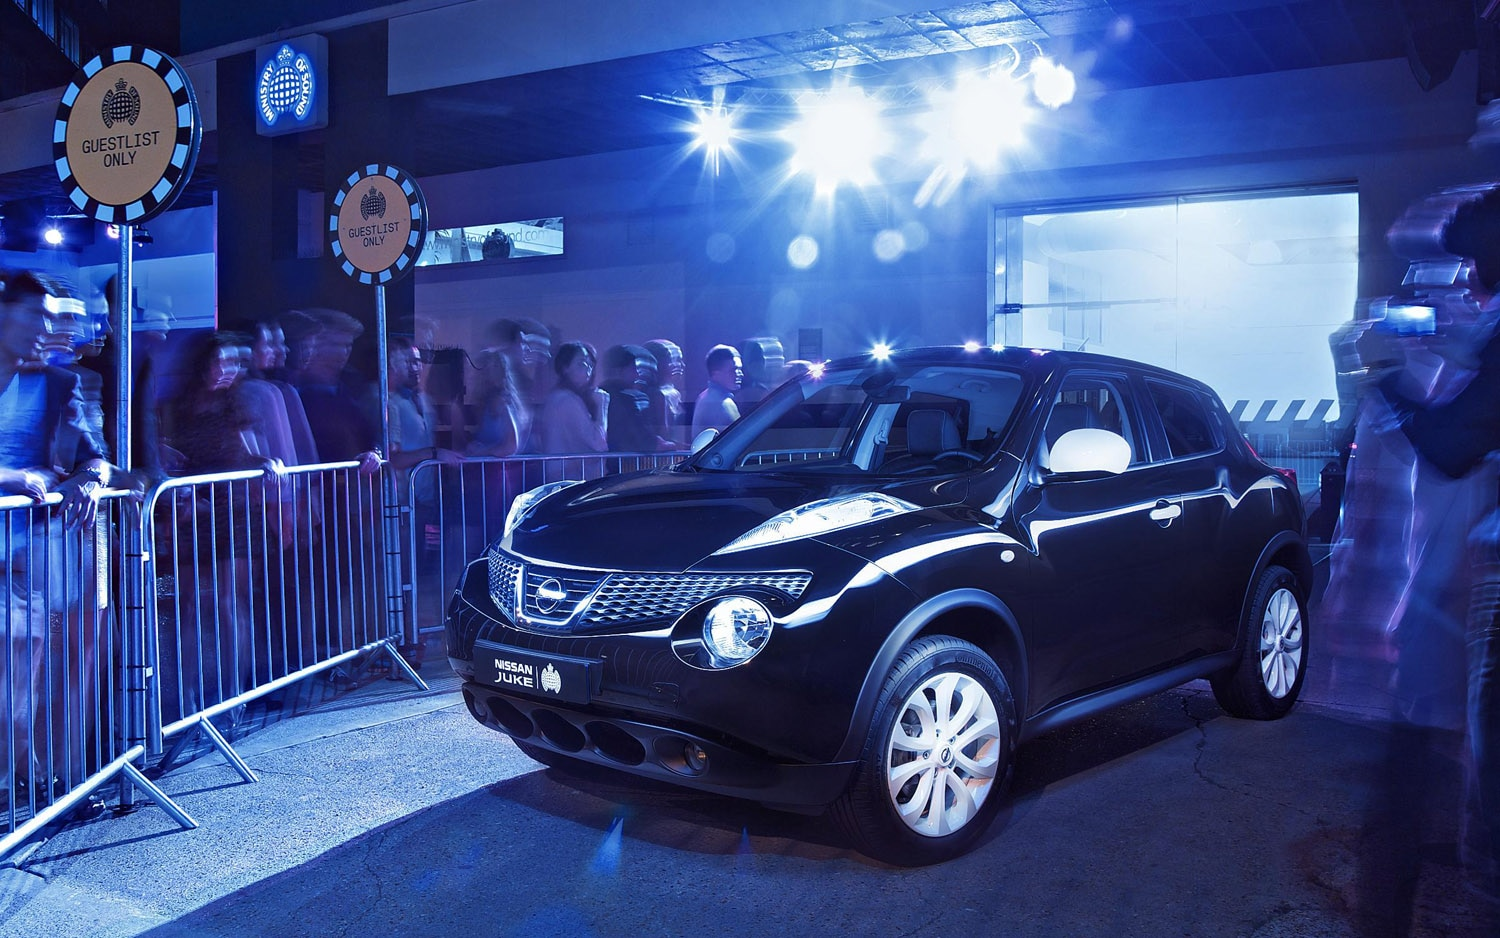 2012 Nissan Juke Ministry Of Sound Front Three Quarter 21